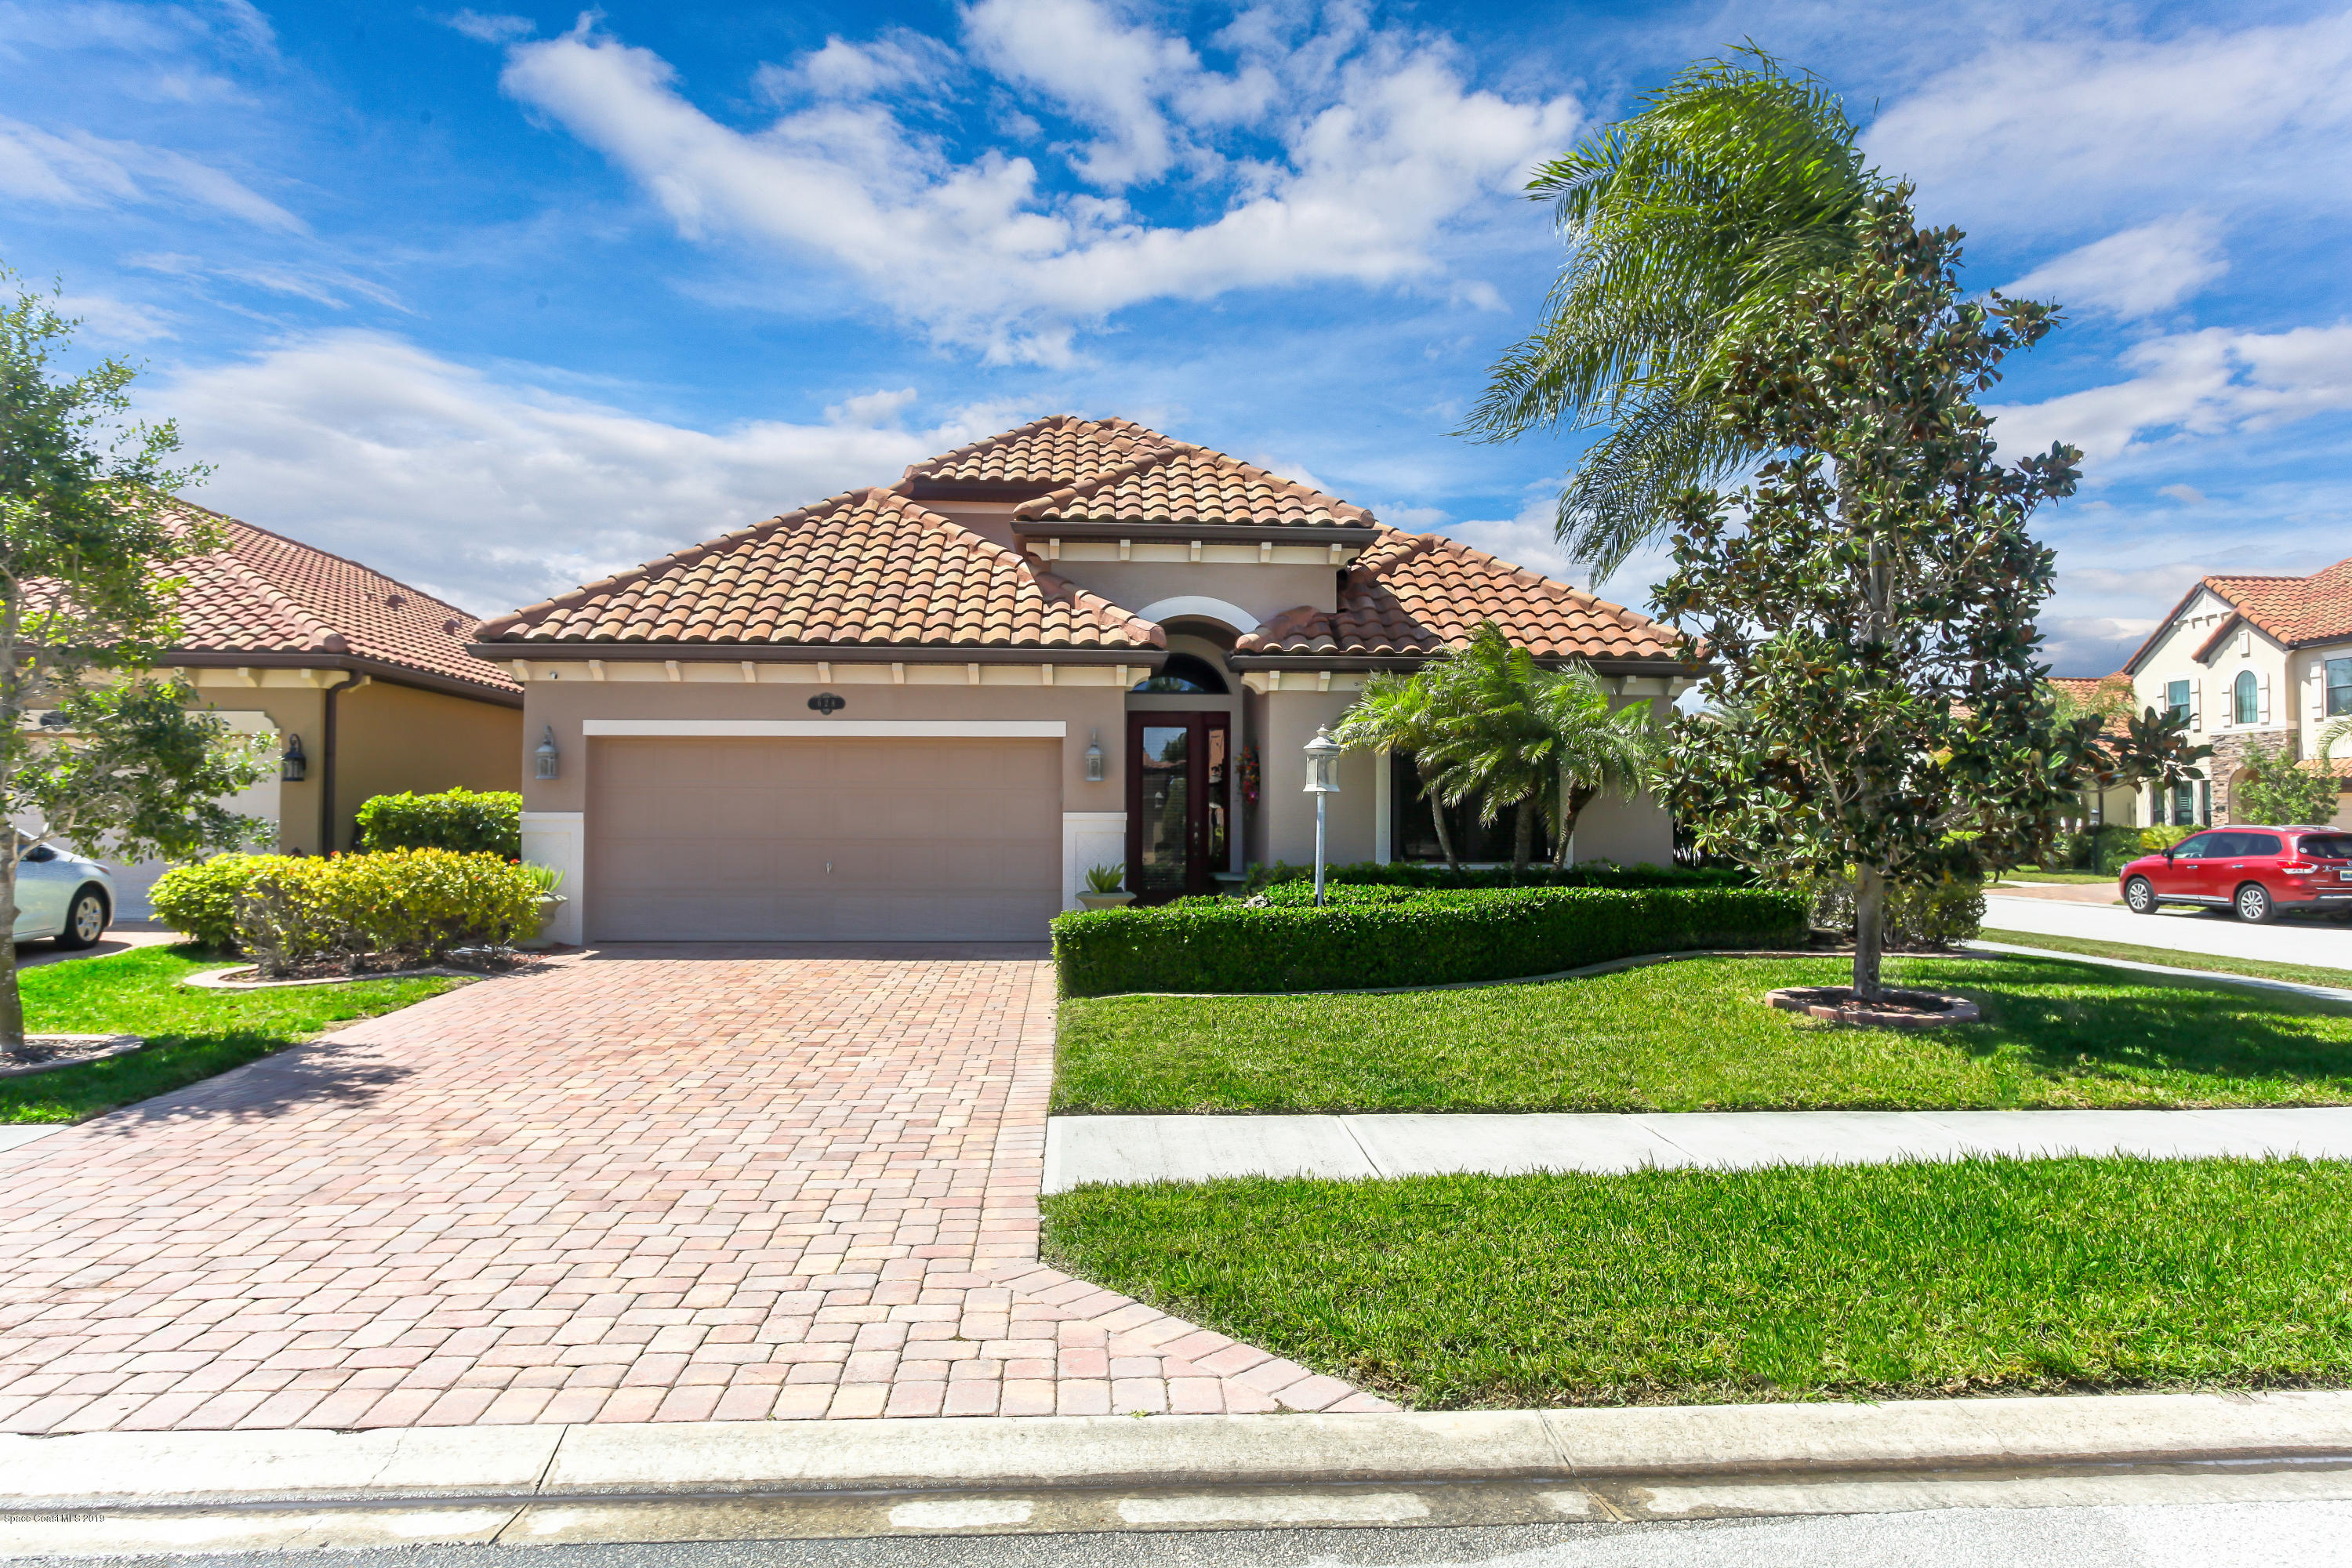 Single Family Homes for Sale at 628 Monterey Satellite Beach, Florida 32937 United States